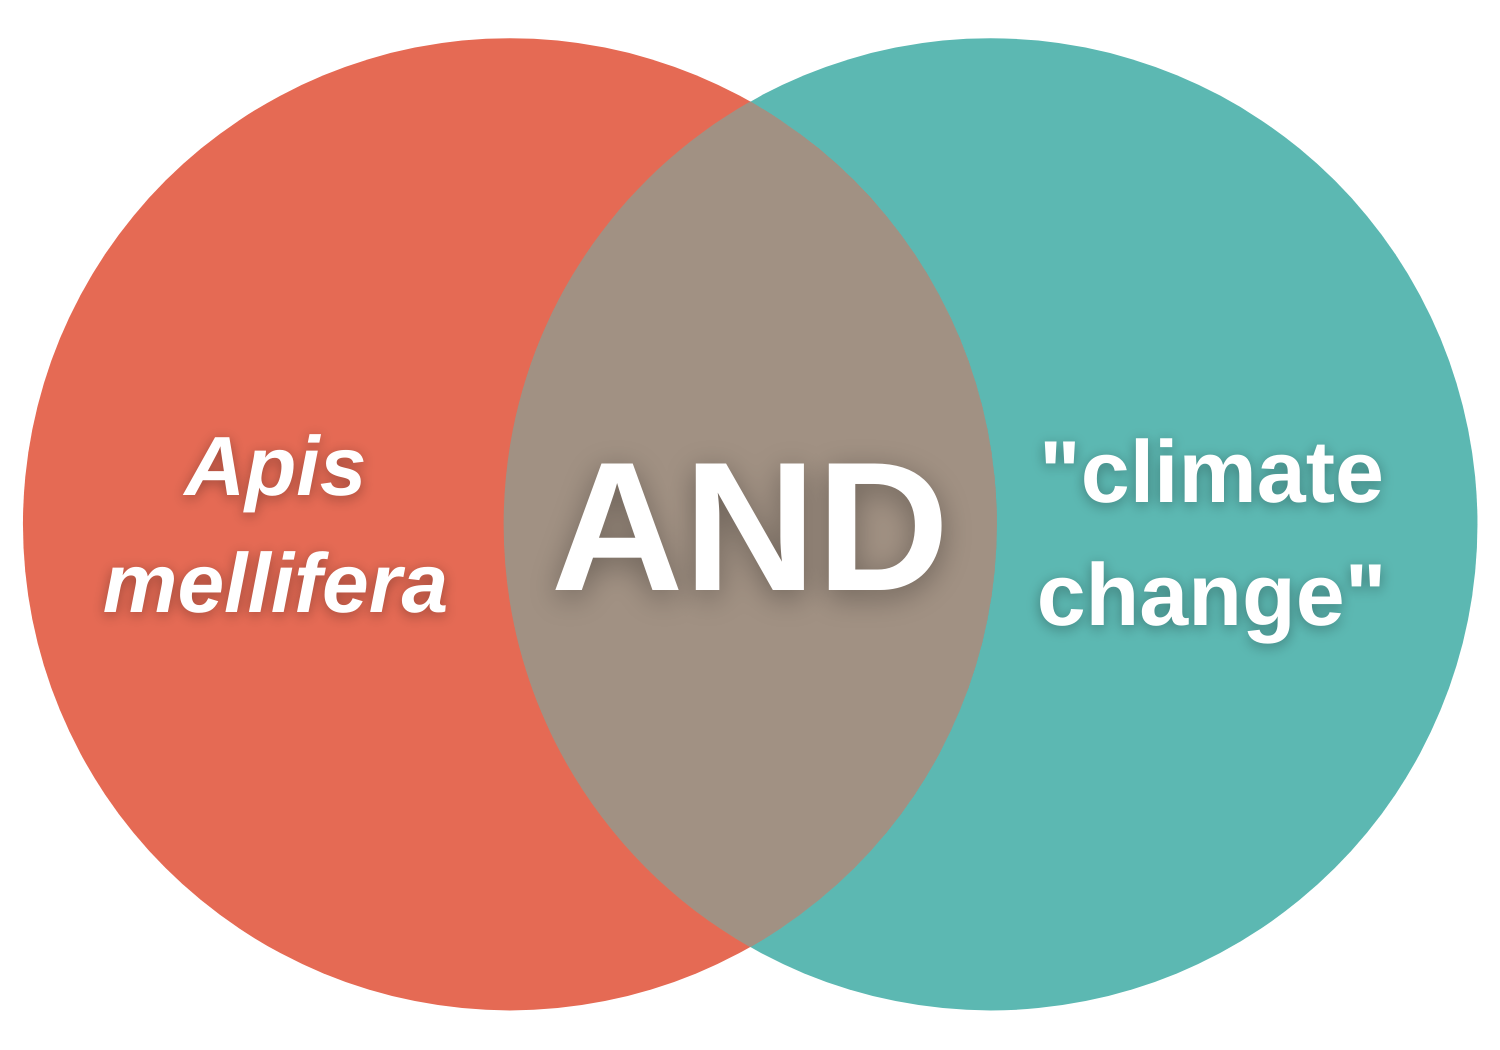 """Venn diagram with the phrase Apis mellifera on in the left circle, the Boolean operator AND in the middle, and the phrase """"climate change"""" in the right circle"""